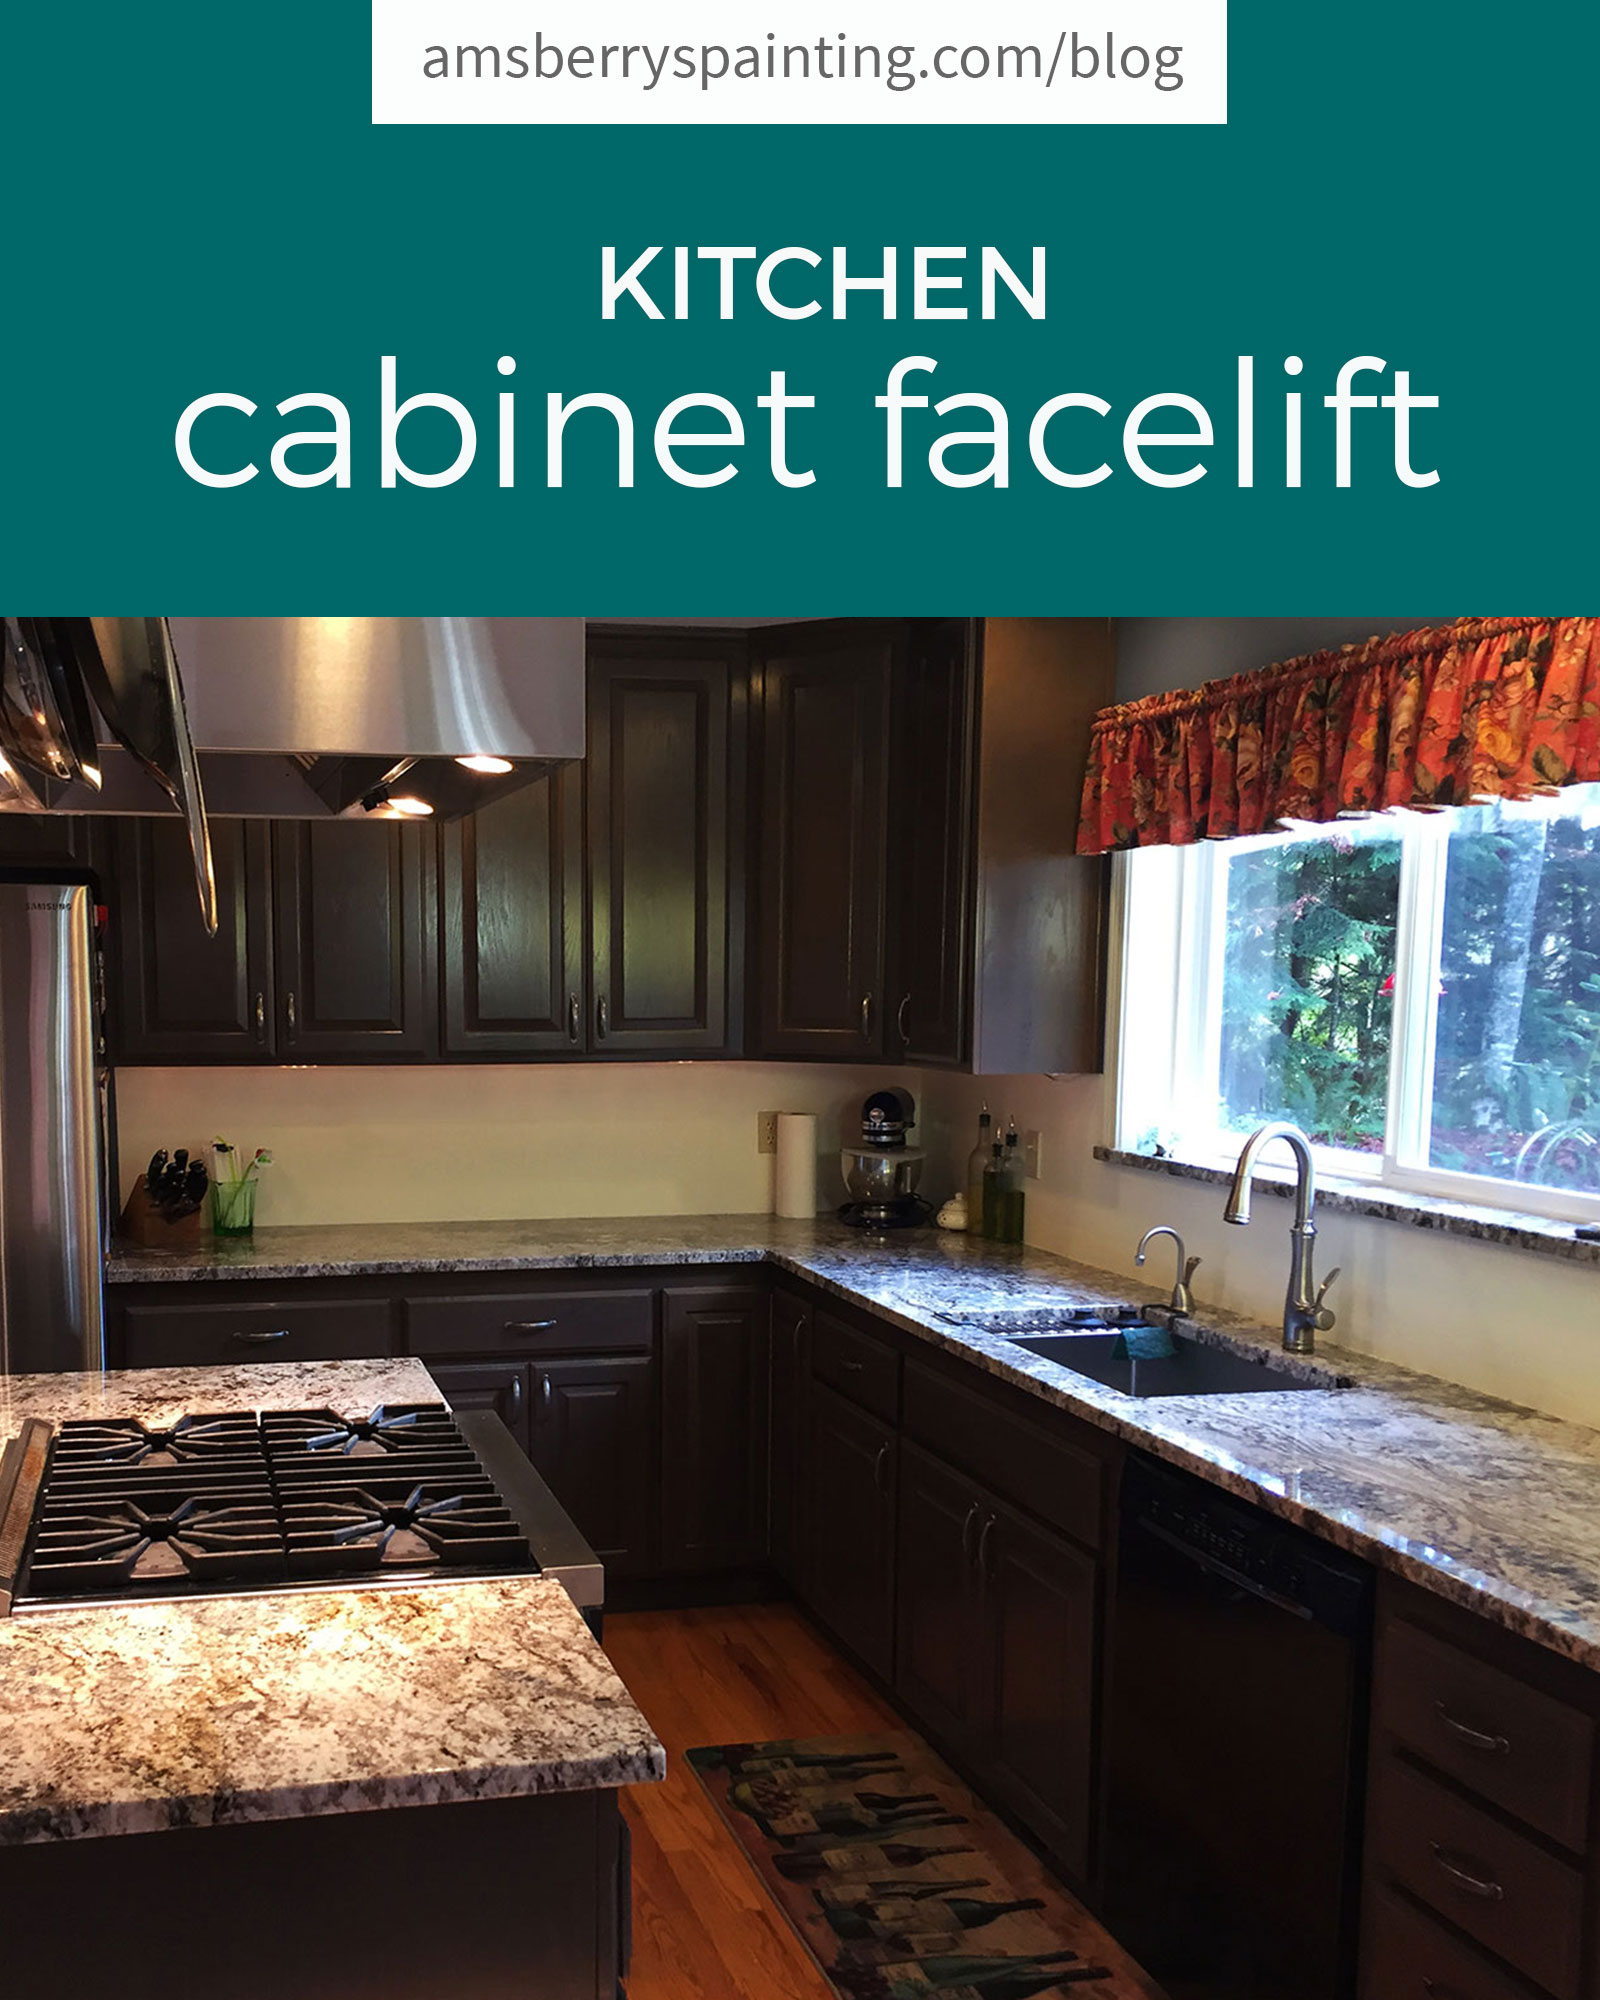 Kitchen Facelift Kitchen Cabinet Facelift Amsberrys Painting